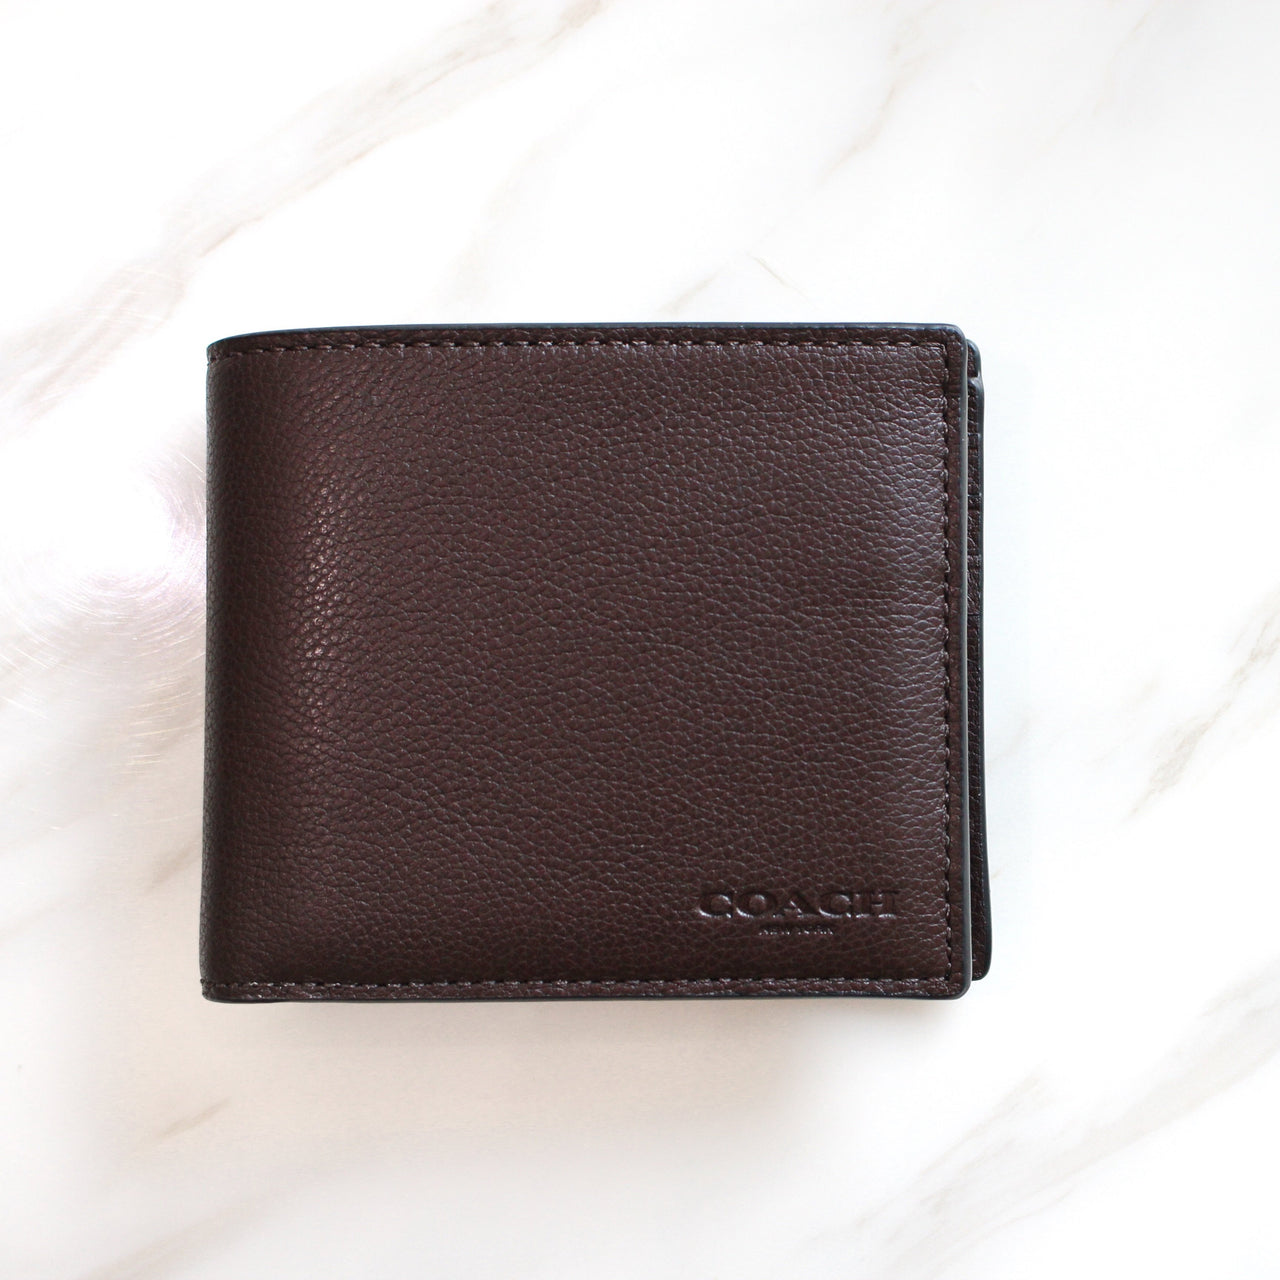 COACH COMPACT ID WALLET IN SPORT CALF LEATHER - Lovely Madness